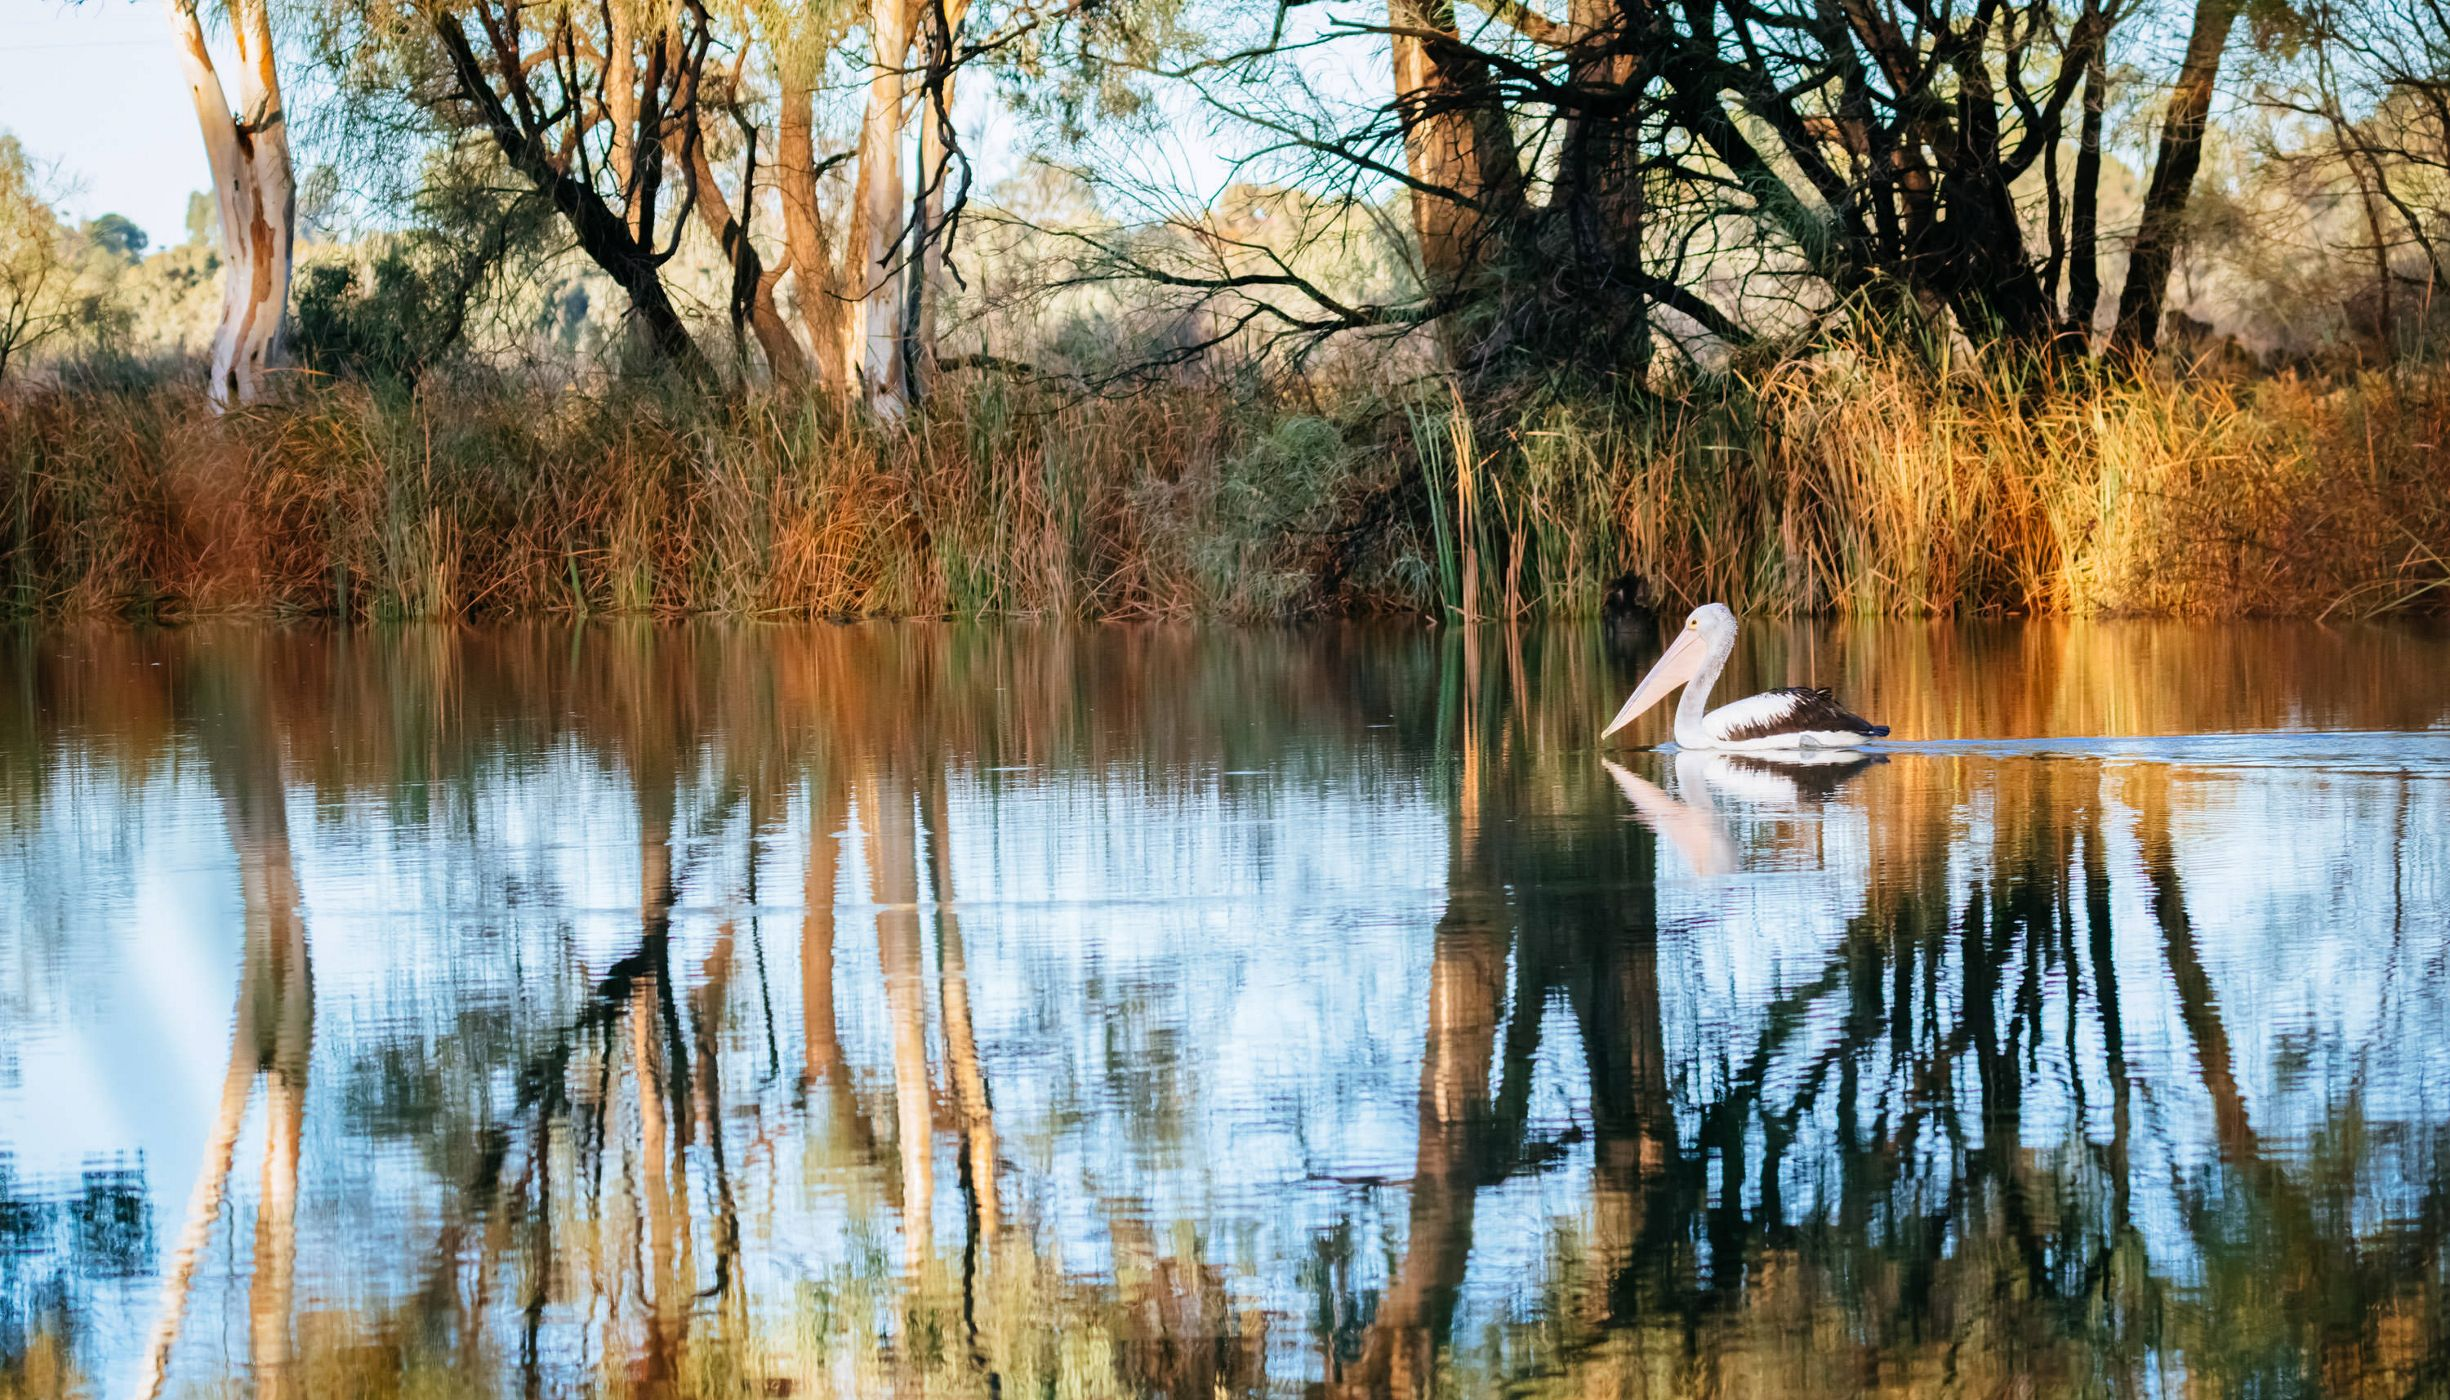 A white pelican in a wetland surrounded by trees